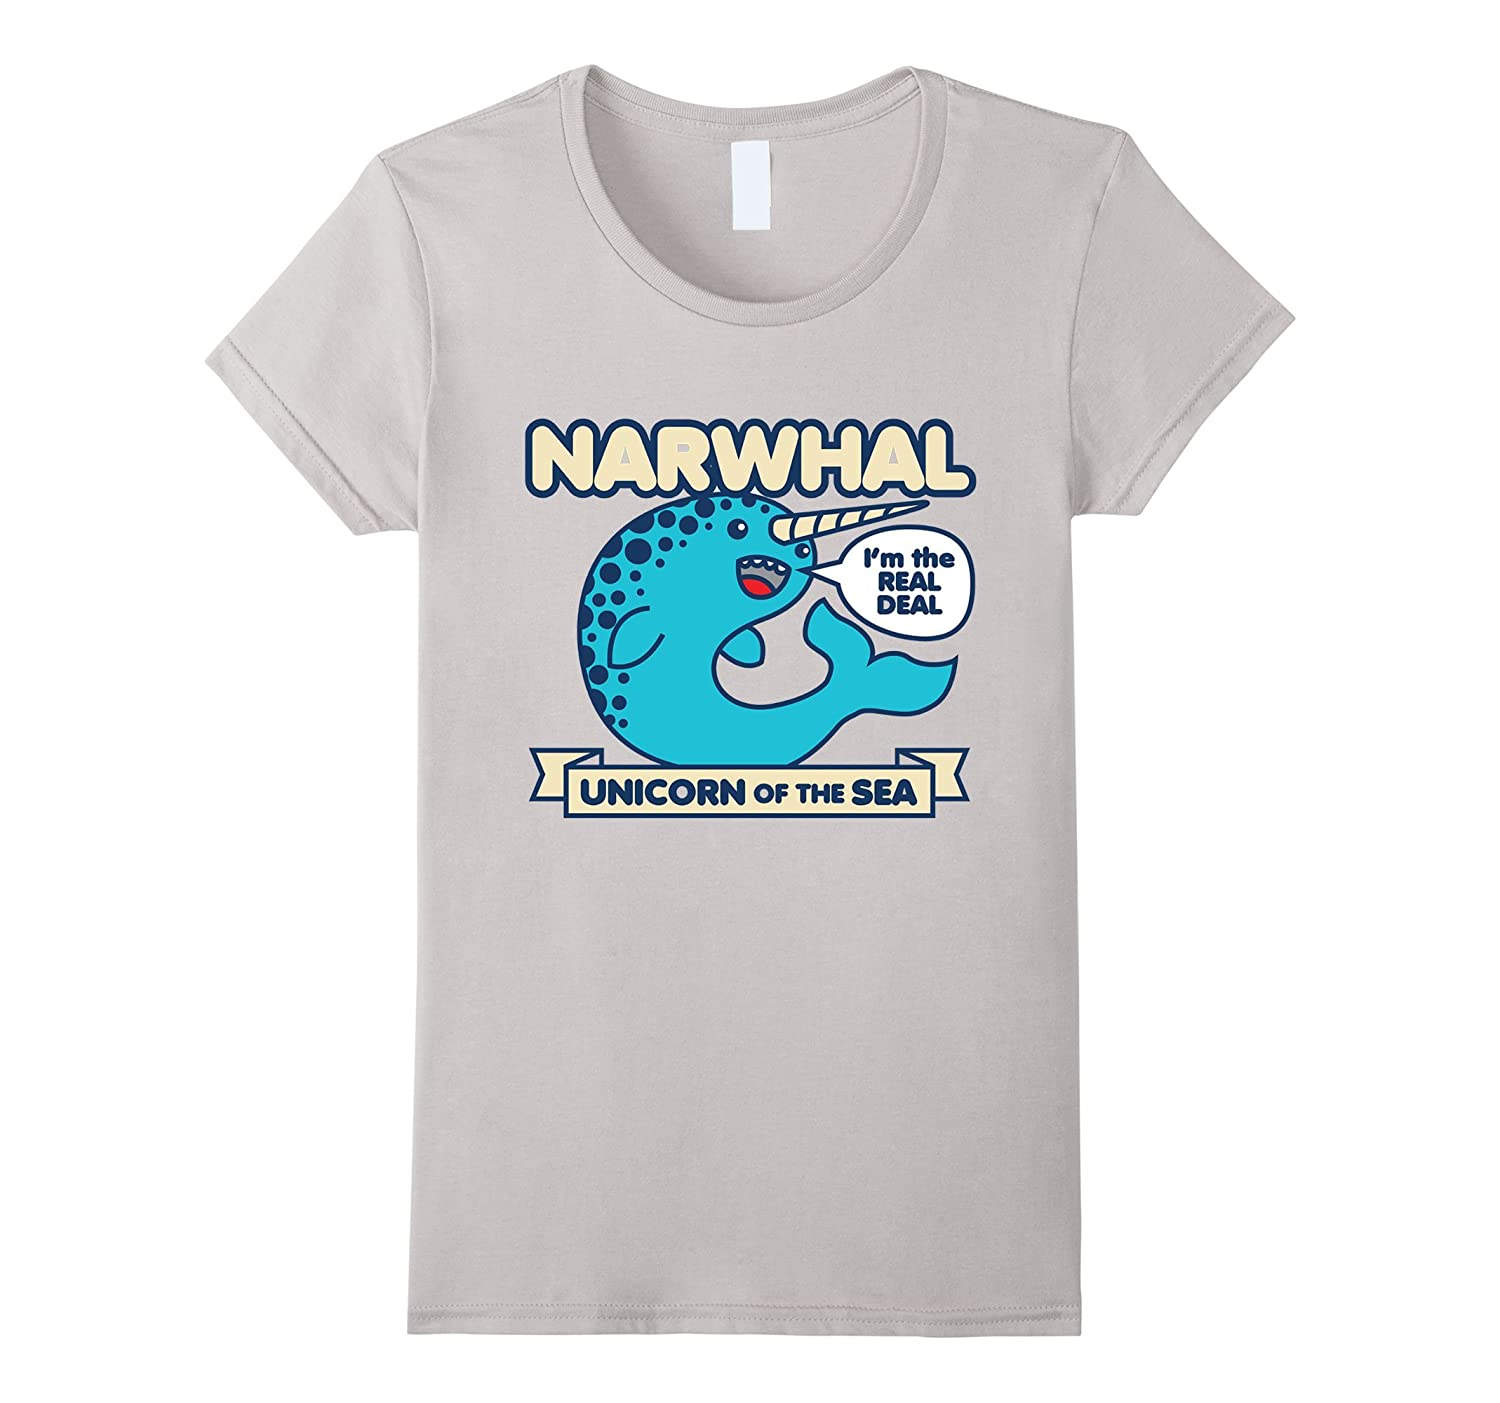 Narwhal, unicorn of the sea t-shirt